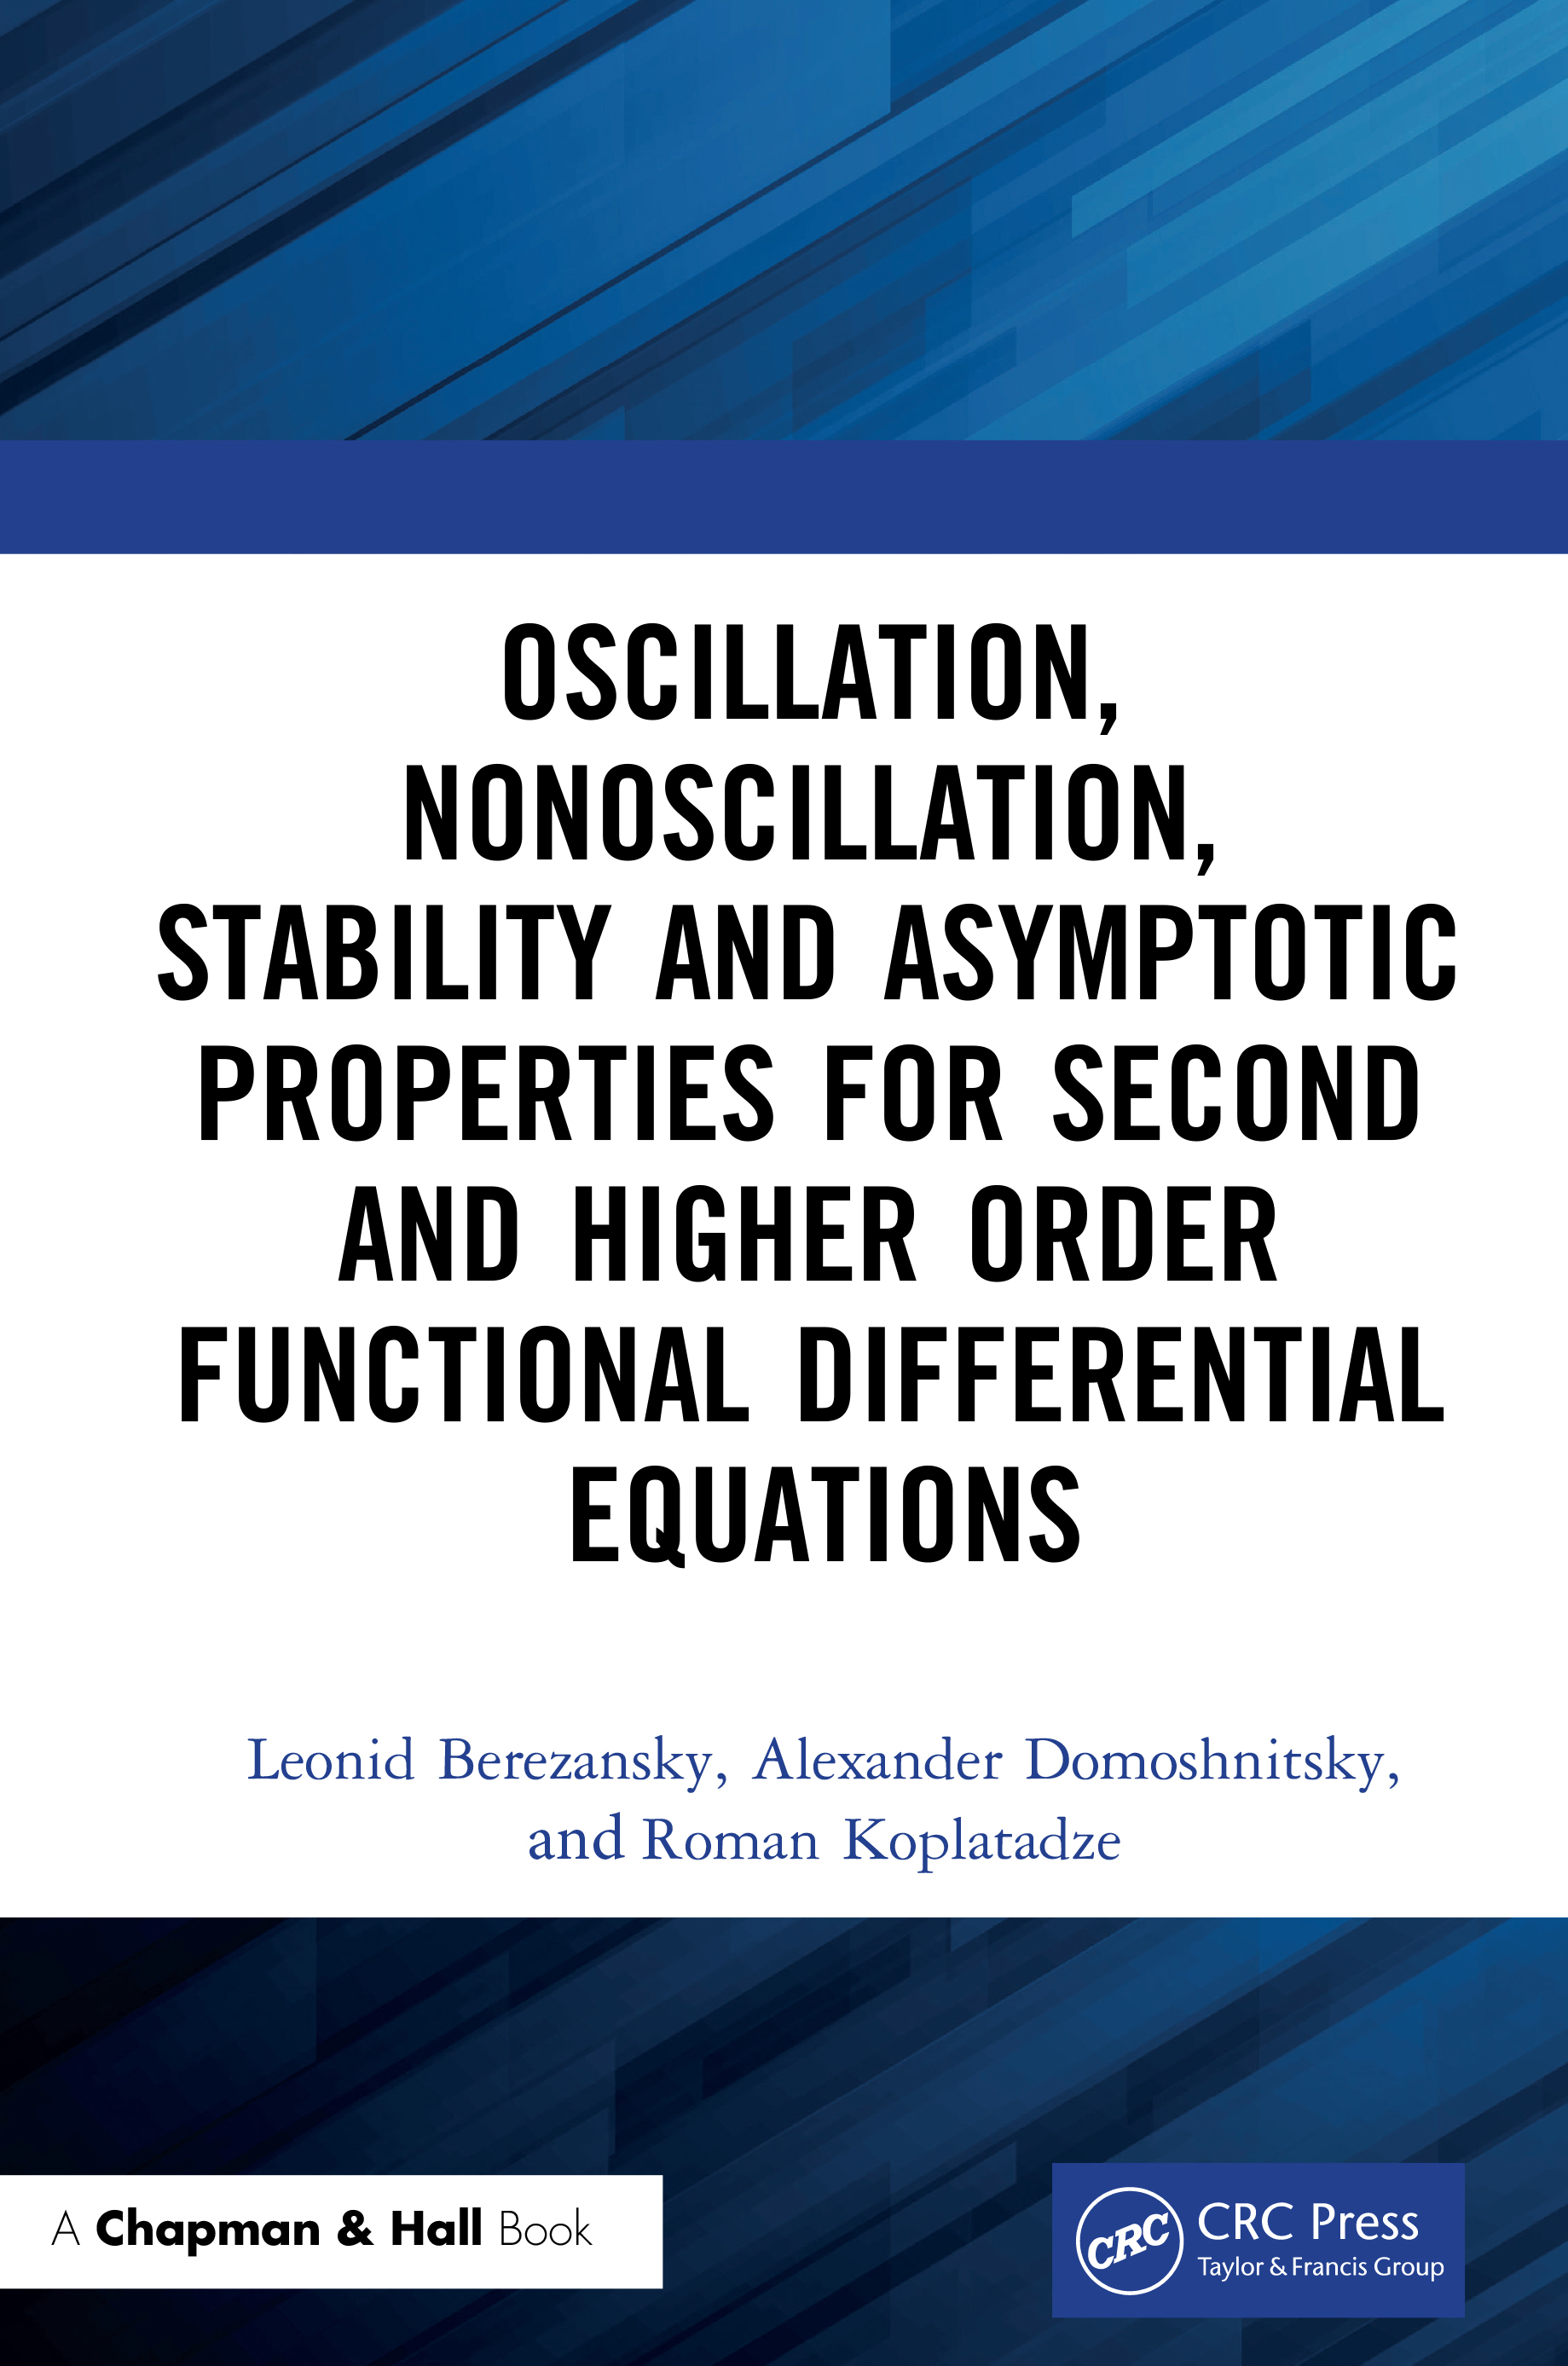 Oscillation, Nonoscillation, Stability and Asymptotic Properties for Second and Higher Order Functional Differential Equations